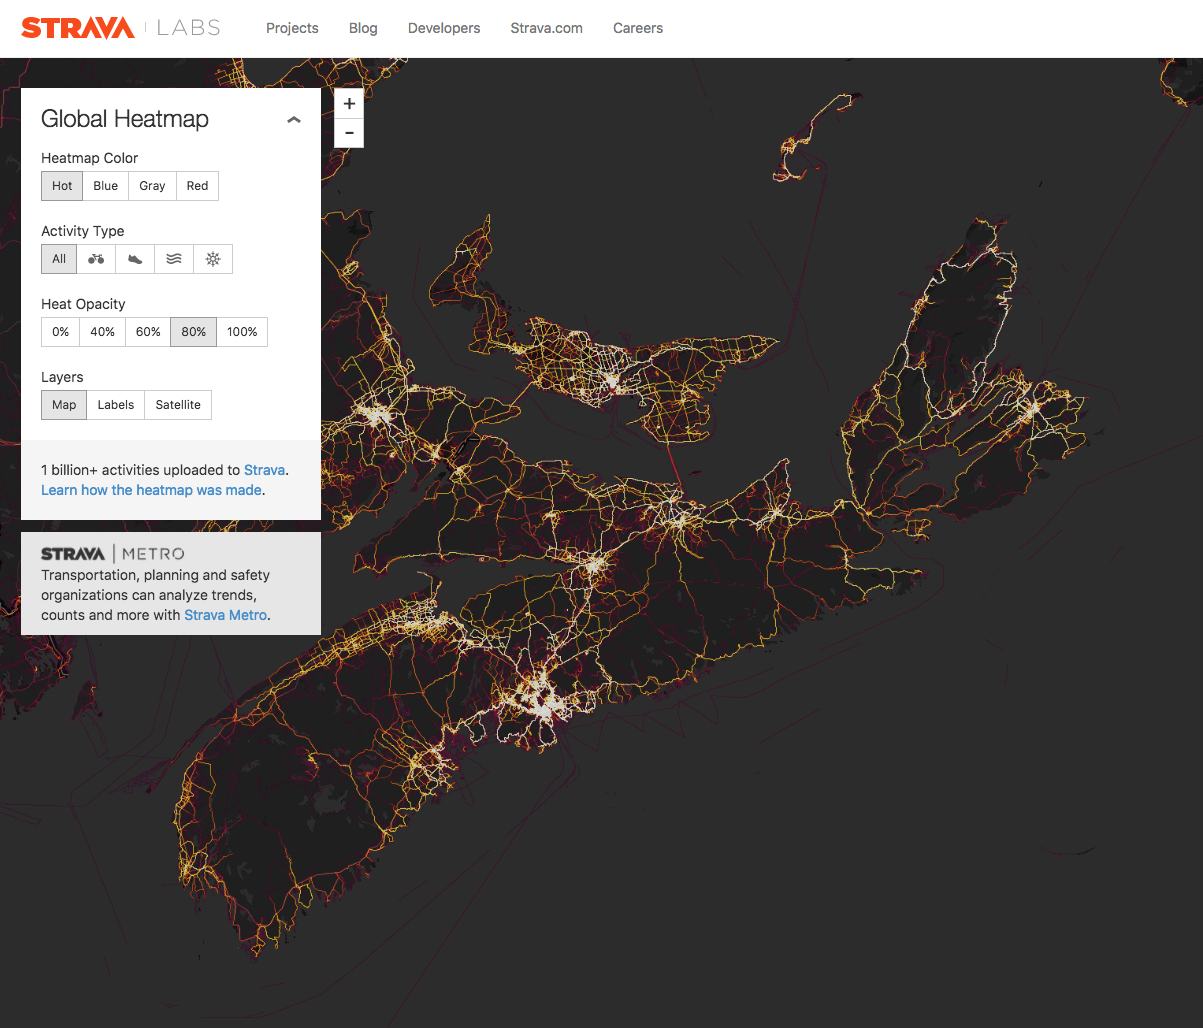 Strava Heatmaps help identify where rides have happened